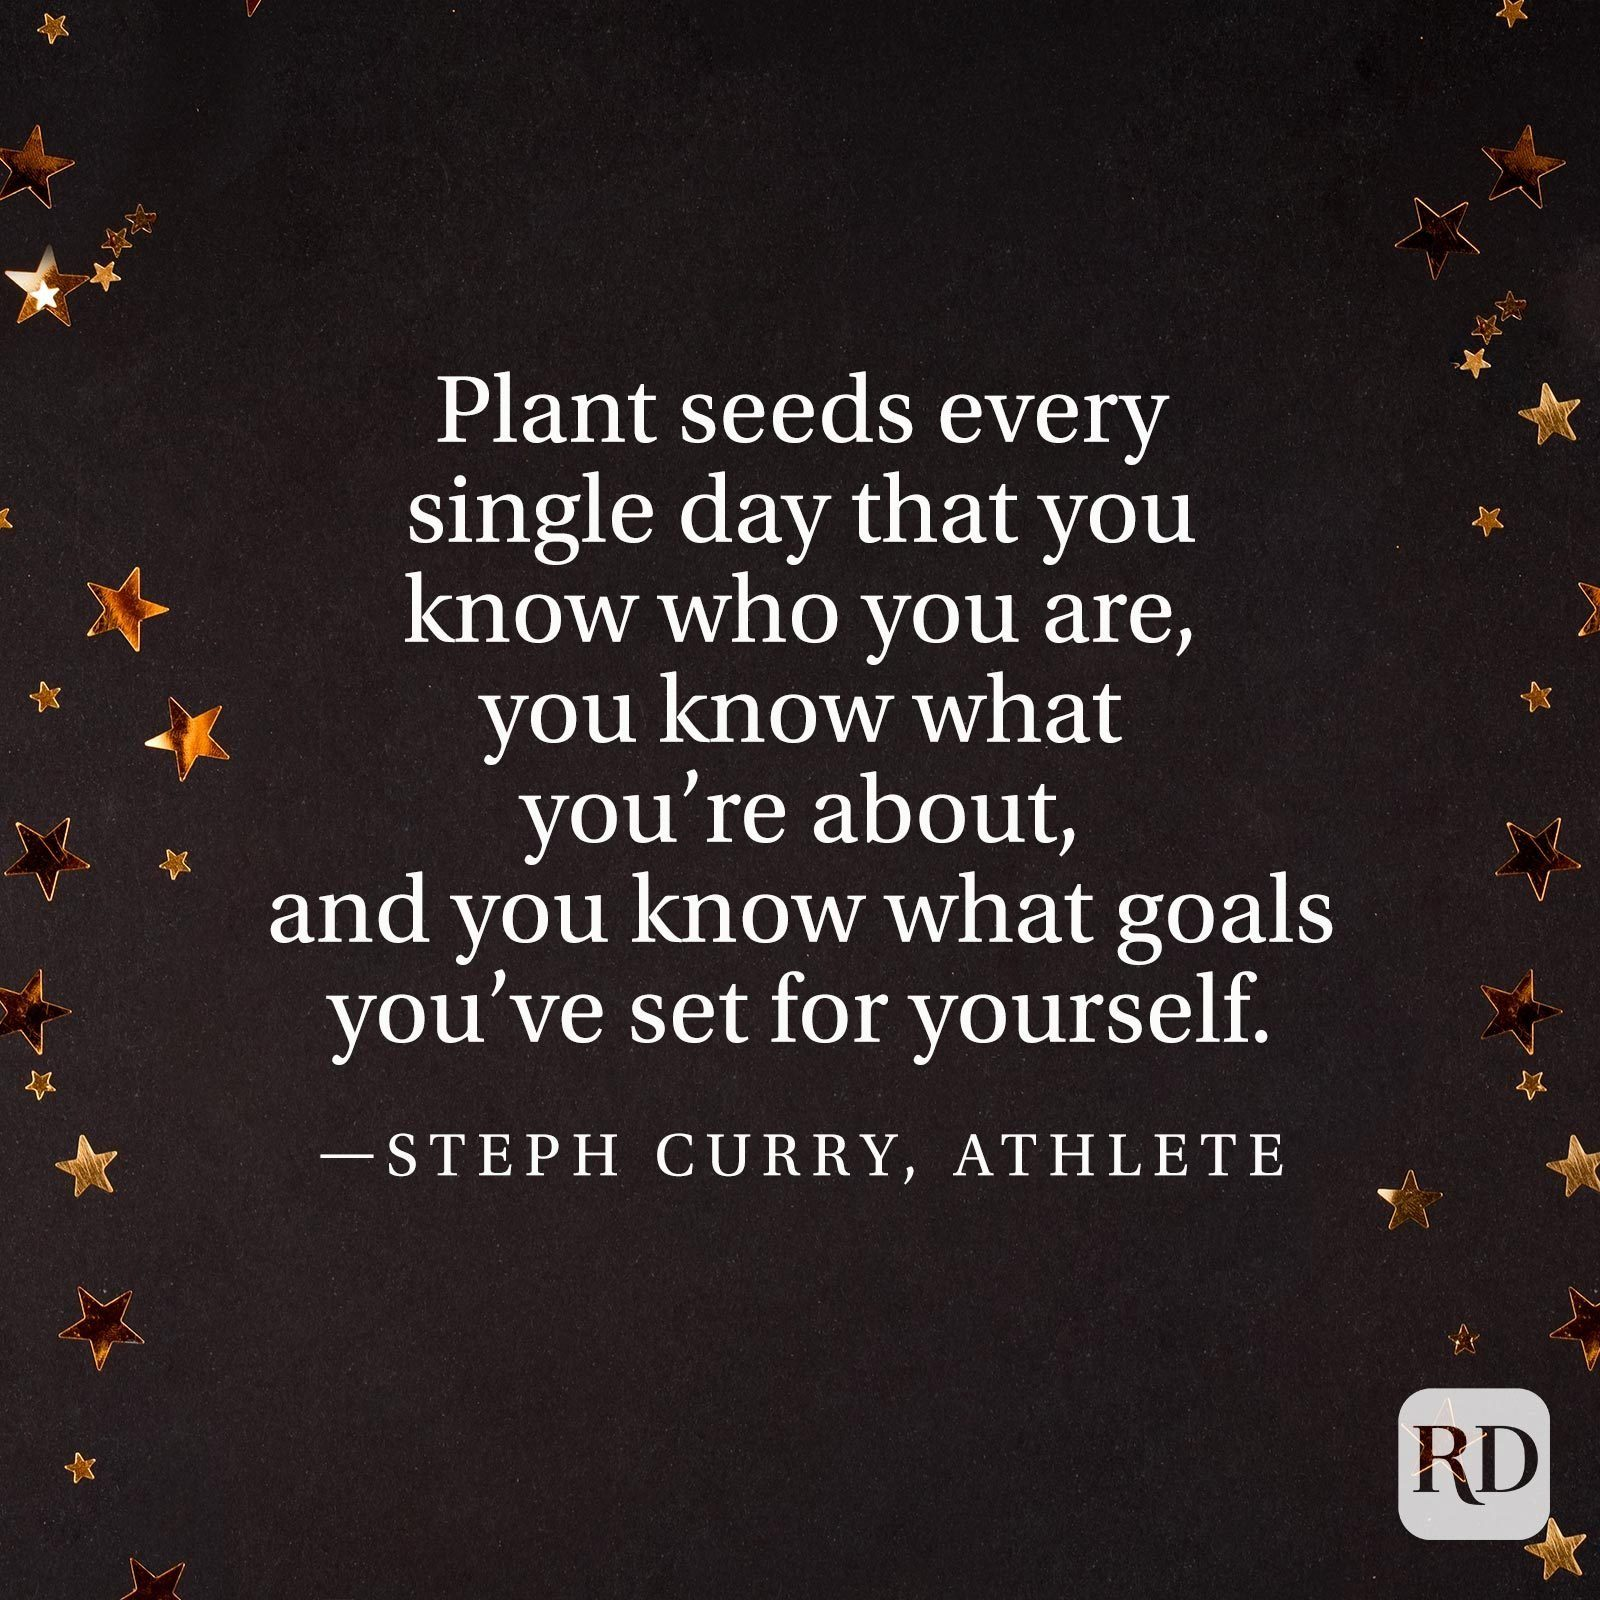 """Plant seeds every single day that you know who you are, you know what you're about, and you know what goals you've set for yourself."" —Steph Curry, athlete"